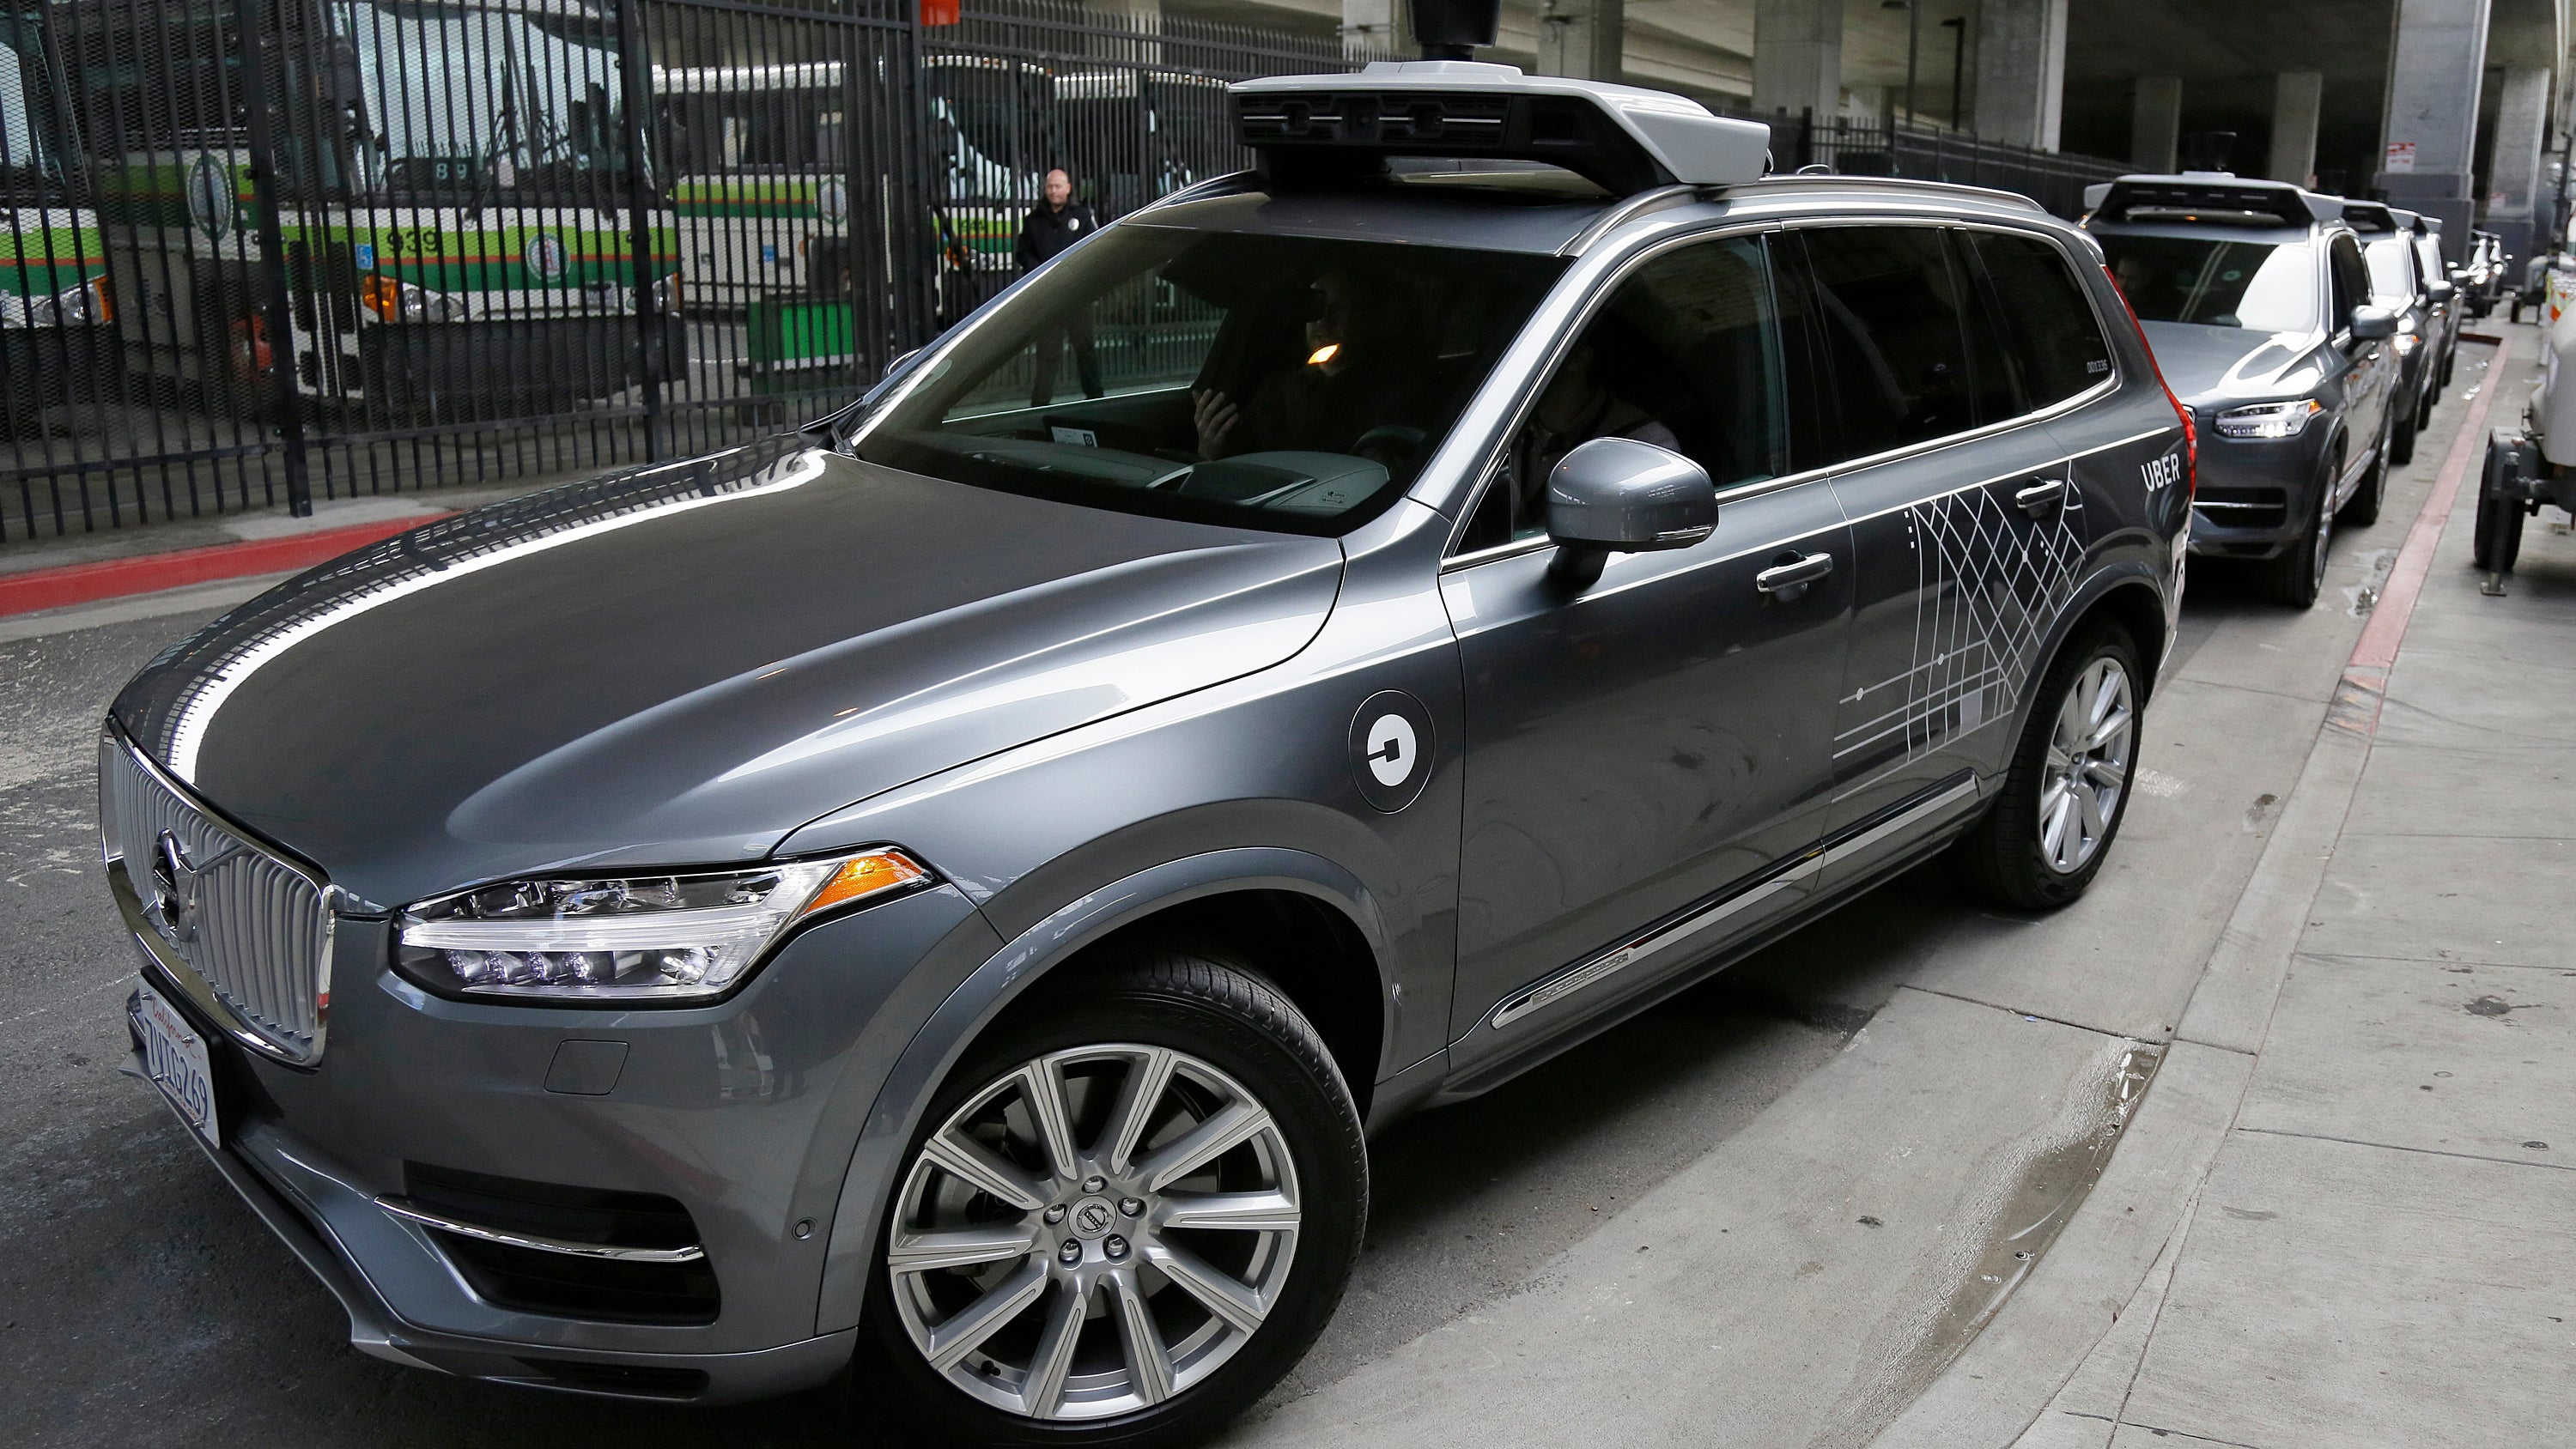 au autonomous-cars feature self-driving-mode uber